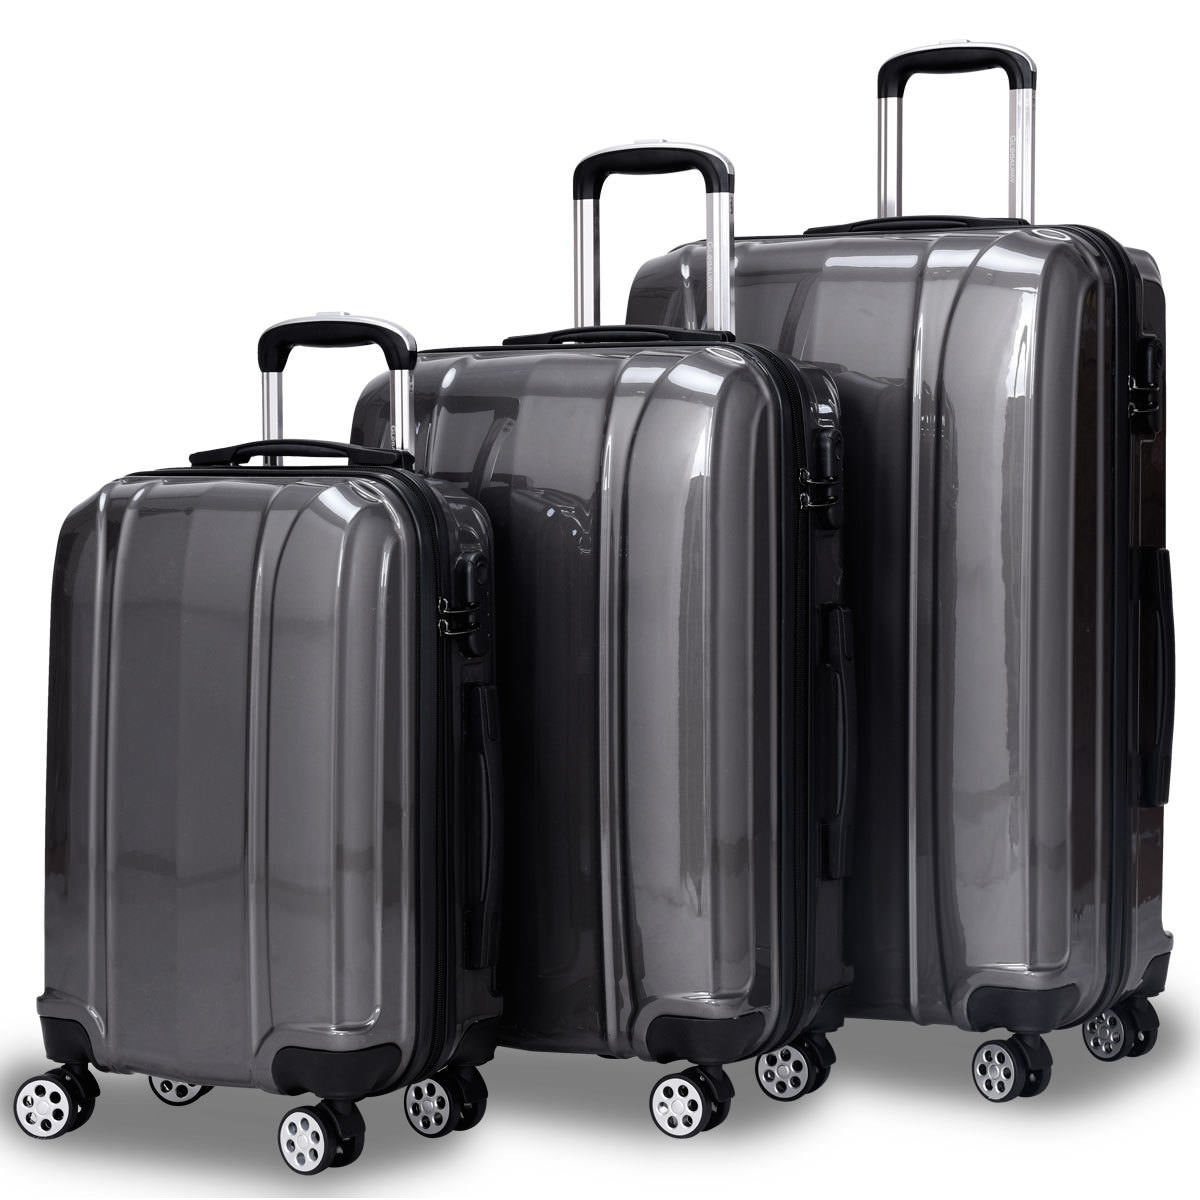 Goplus 3 Piece Luggage Set Hard Suitcases Carry On for Travel (Silver)